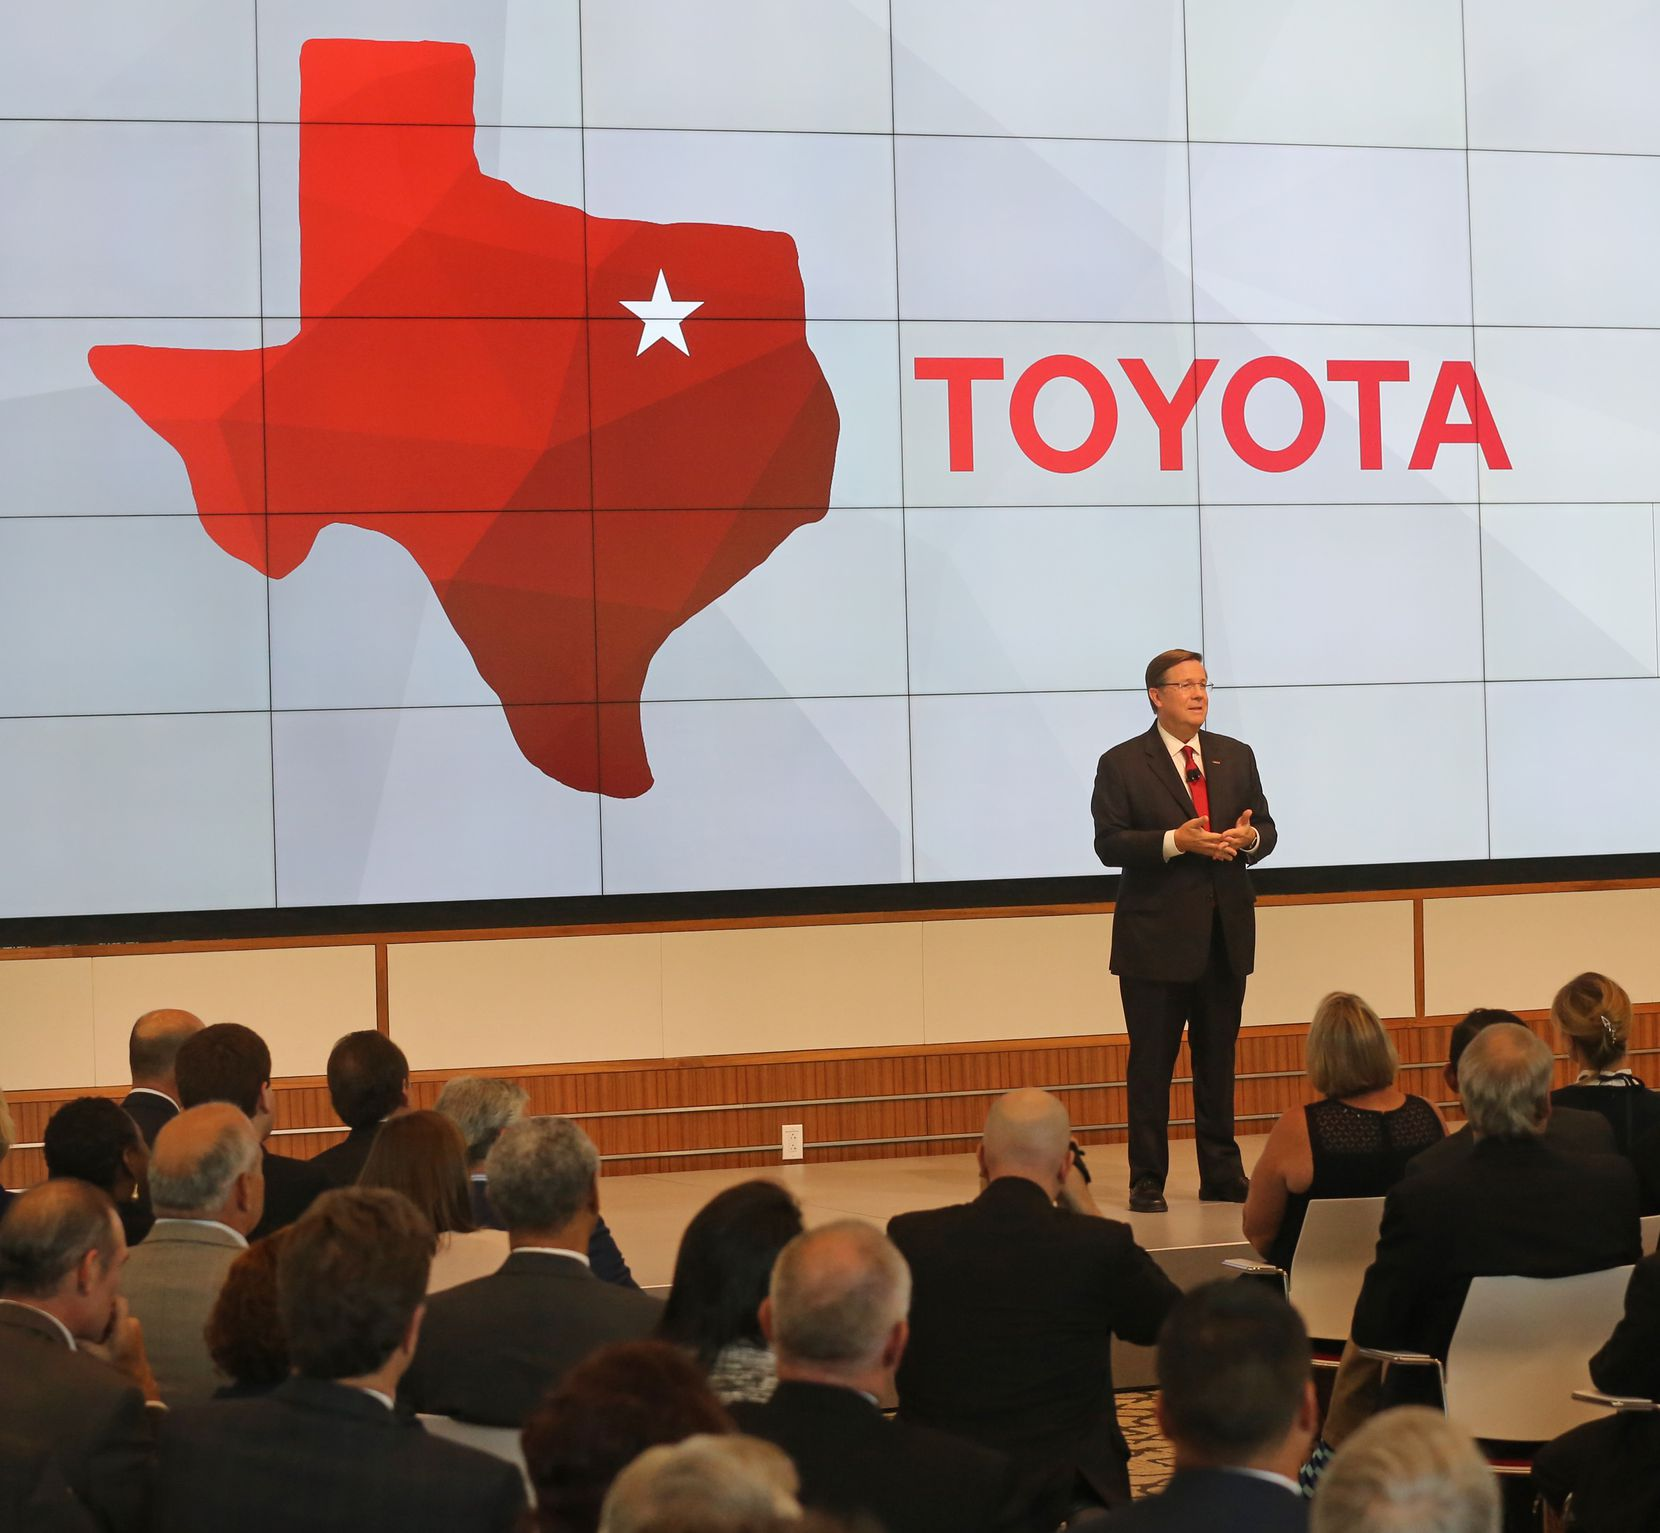 Toyota CEO Jim Lentz talks with the crowd at the grand opening ceremony of the Toyota headquarters in Plano, Texas, photographed on Thursday, July 6, 2017. (Louis DeLuca/The Dallas Morning News)